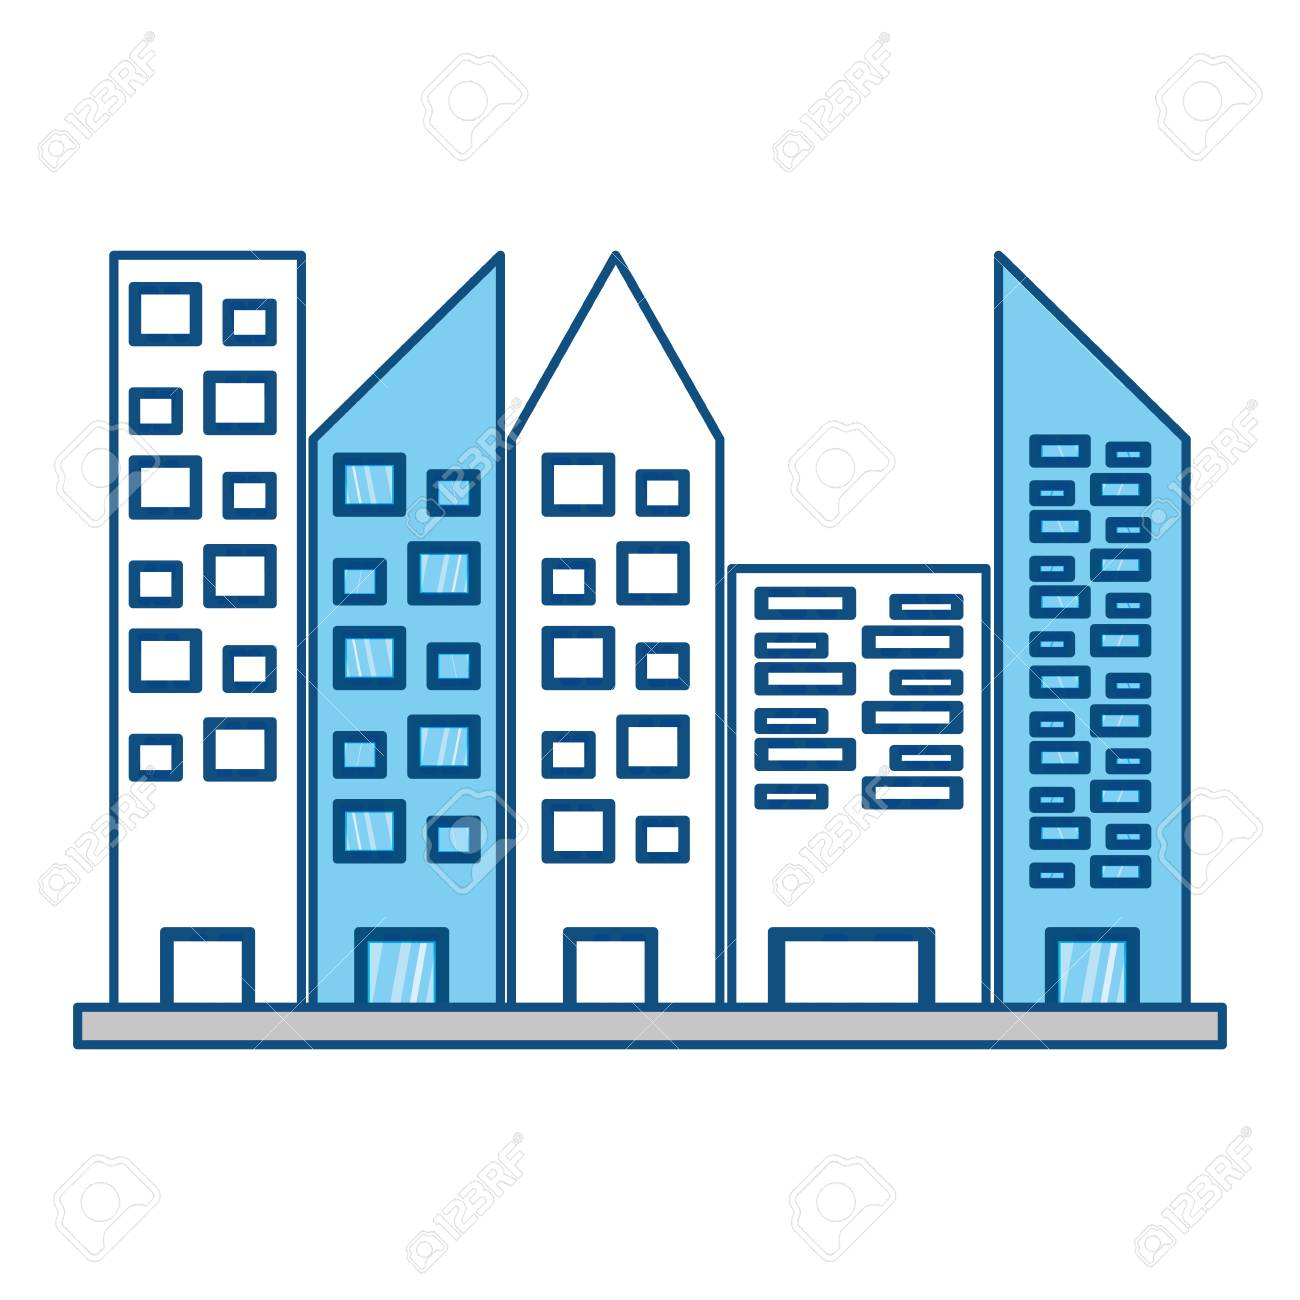 urban towers buildings icon vector illustration graphic design rh 123rf com vector builders + fort worth vector building silhouette